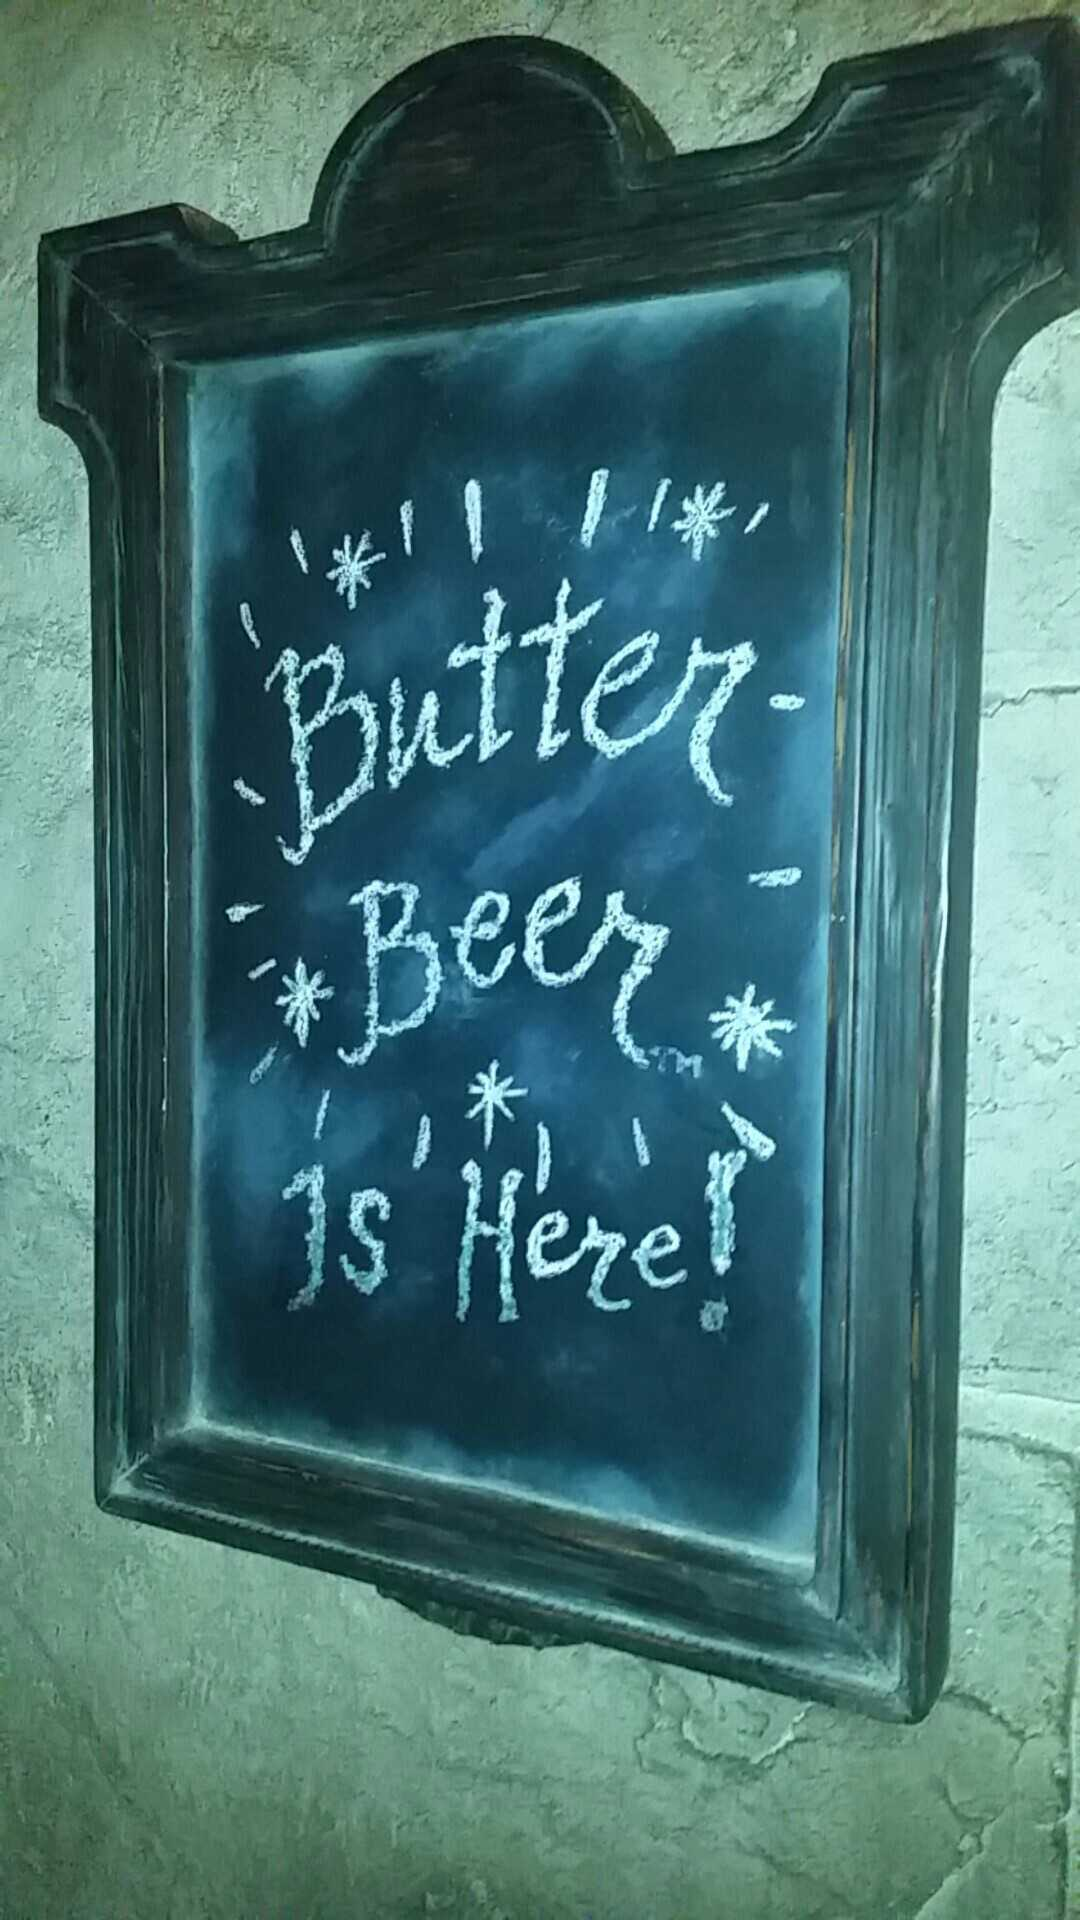 I couldn't find a photo I took of the Butterbeer Potted Cream, but here's a sign from inside the Leaky Cauldron.